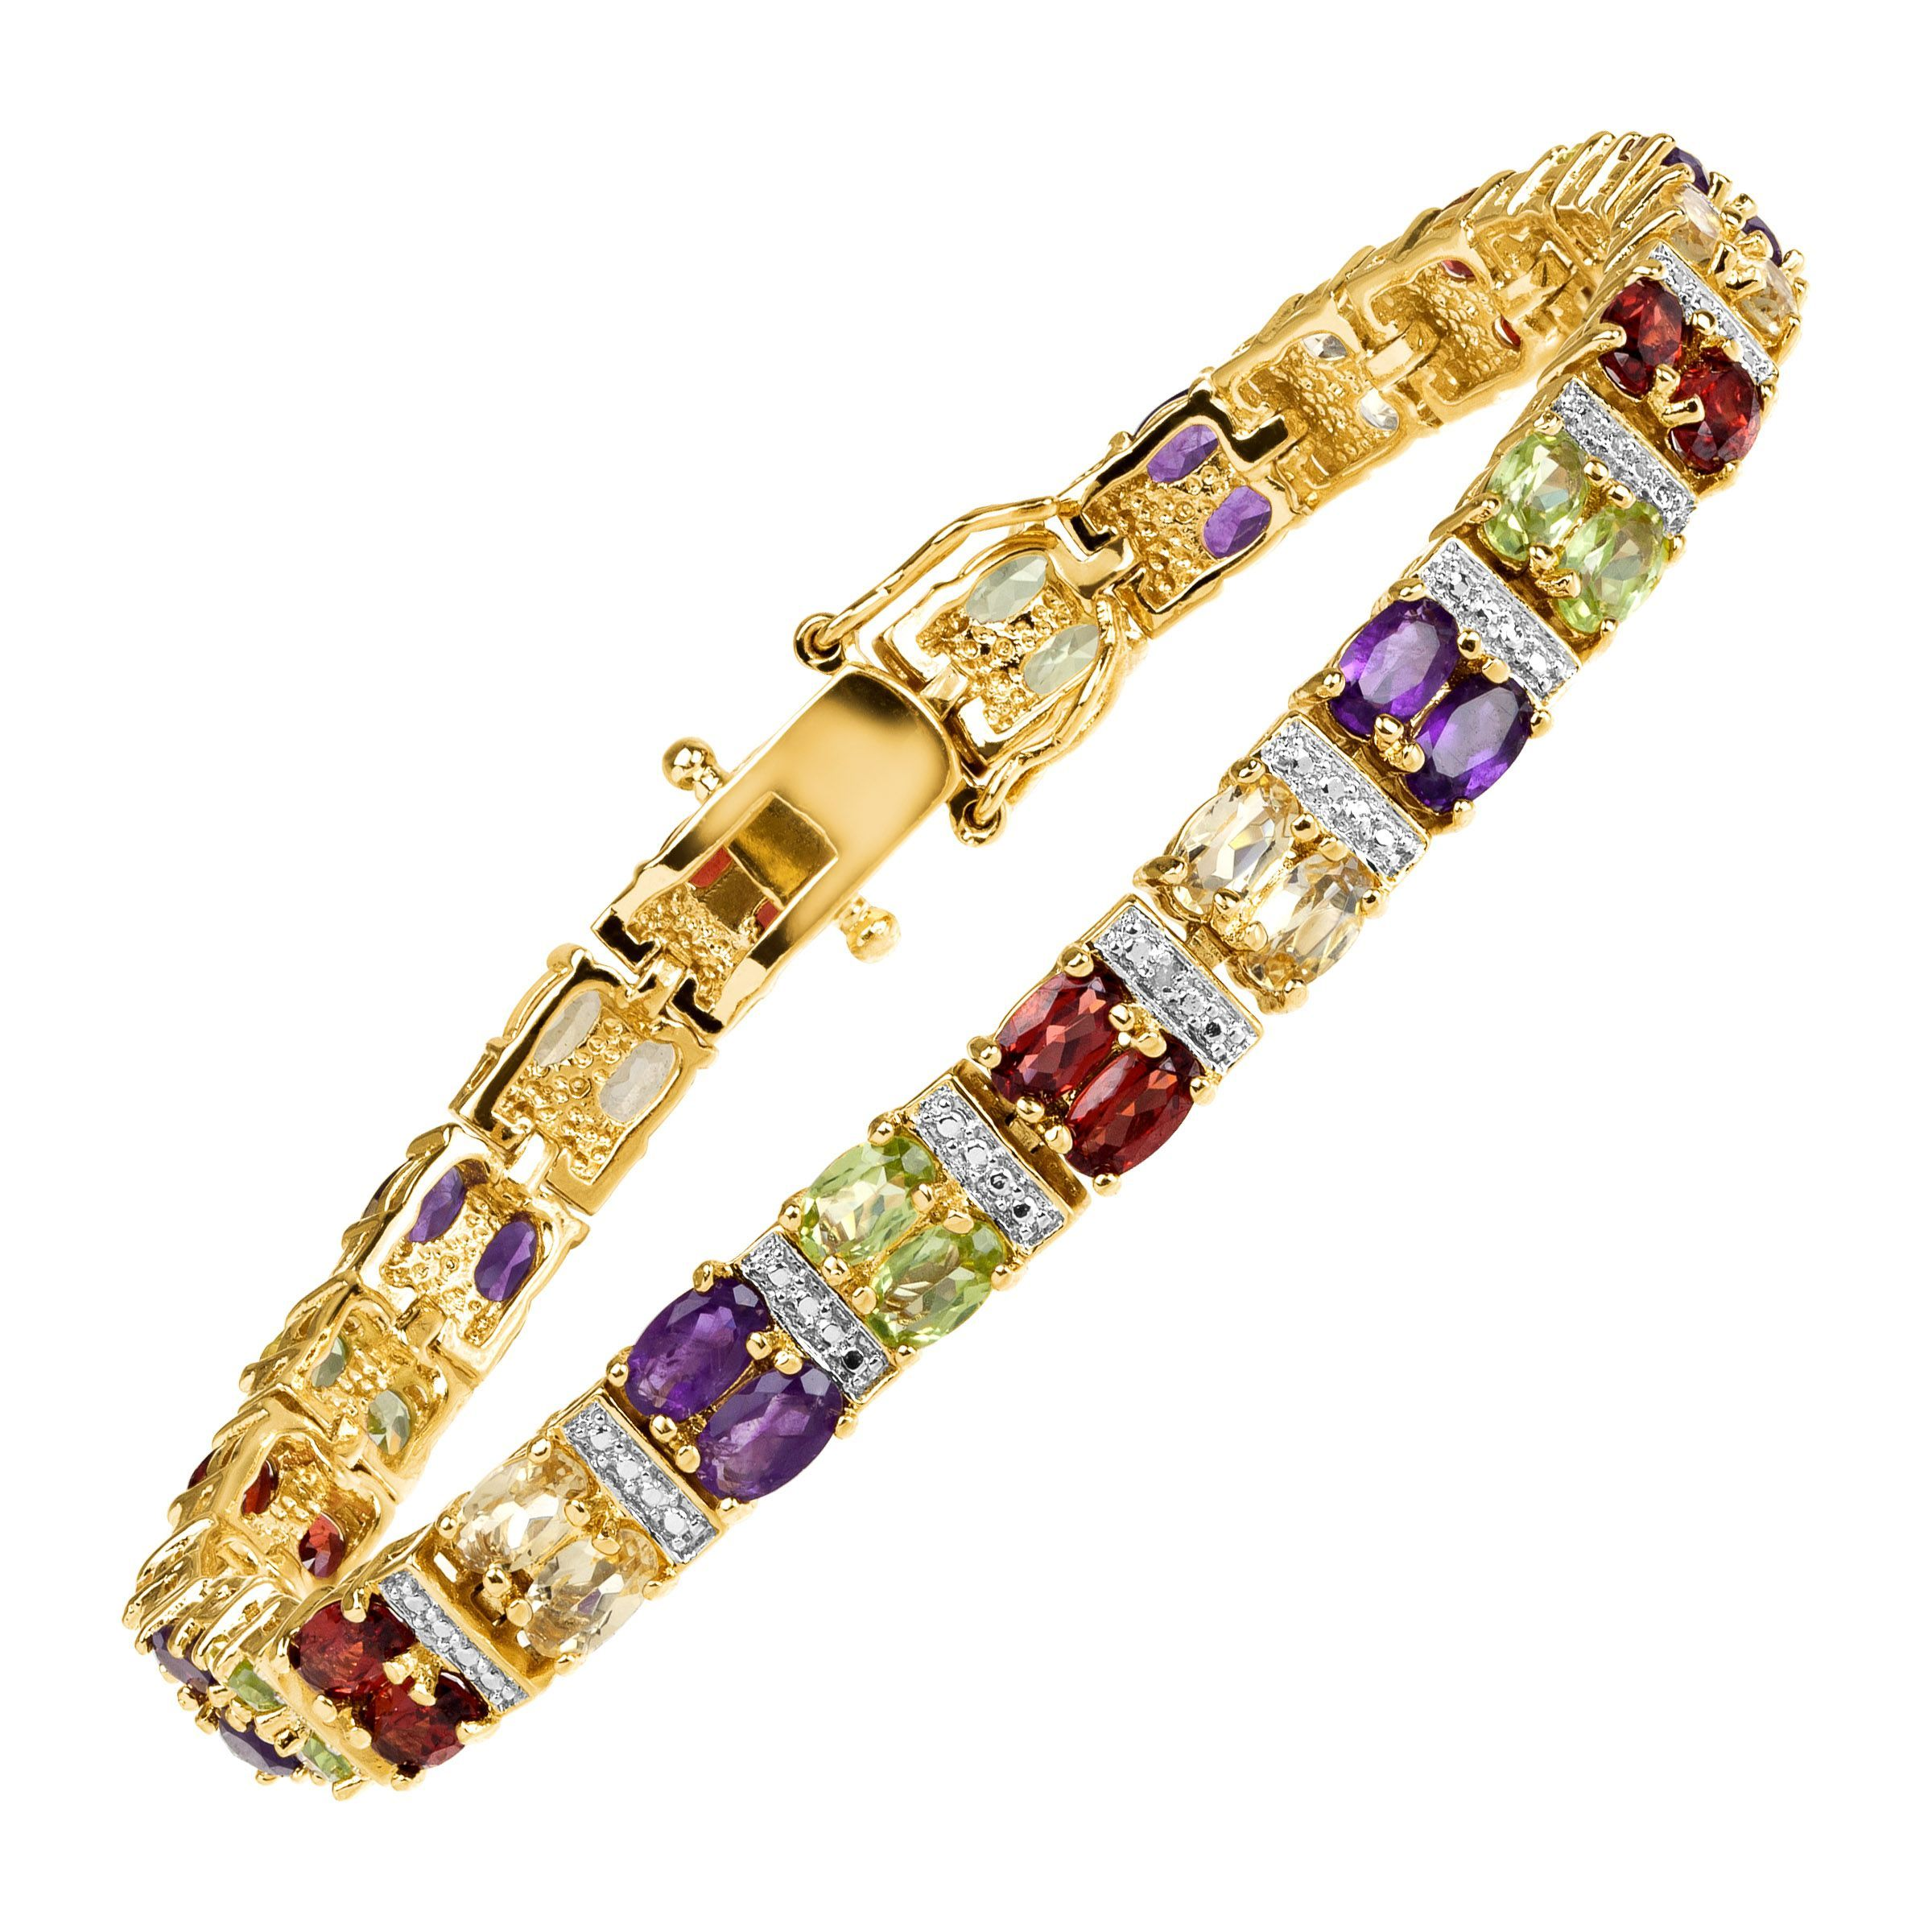 bangles bangle gold bracelet baguette yellow london collection diamond